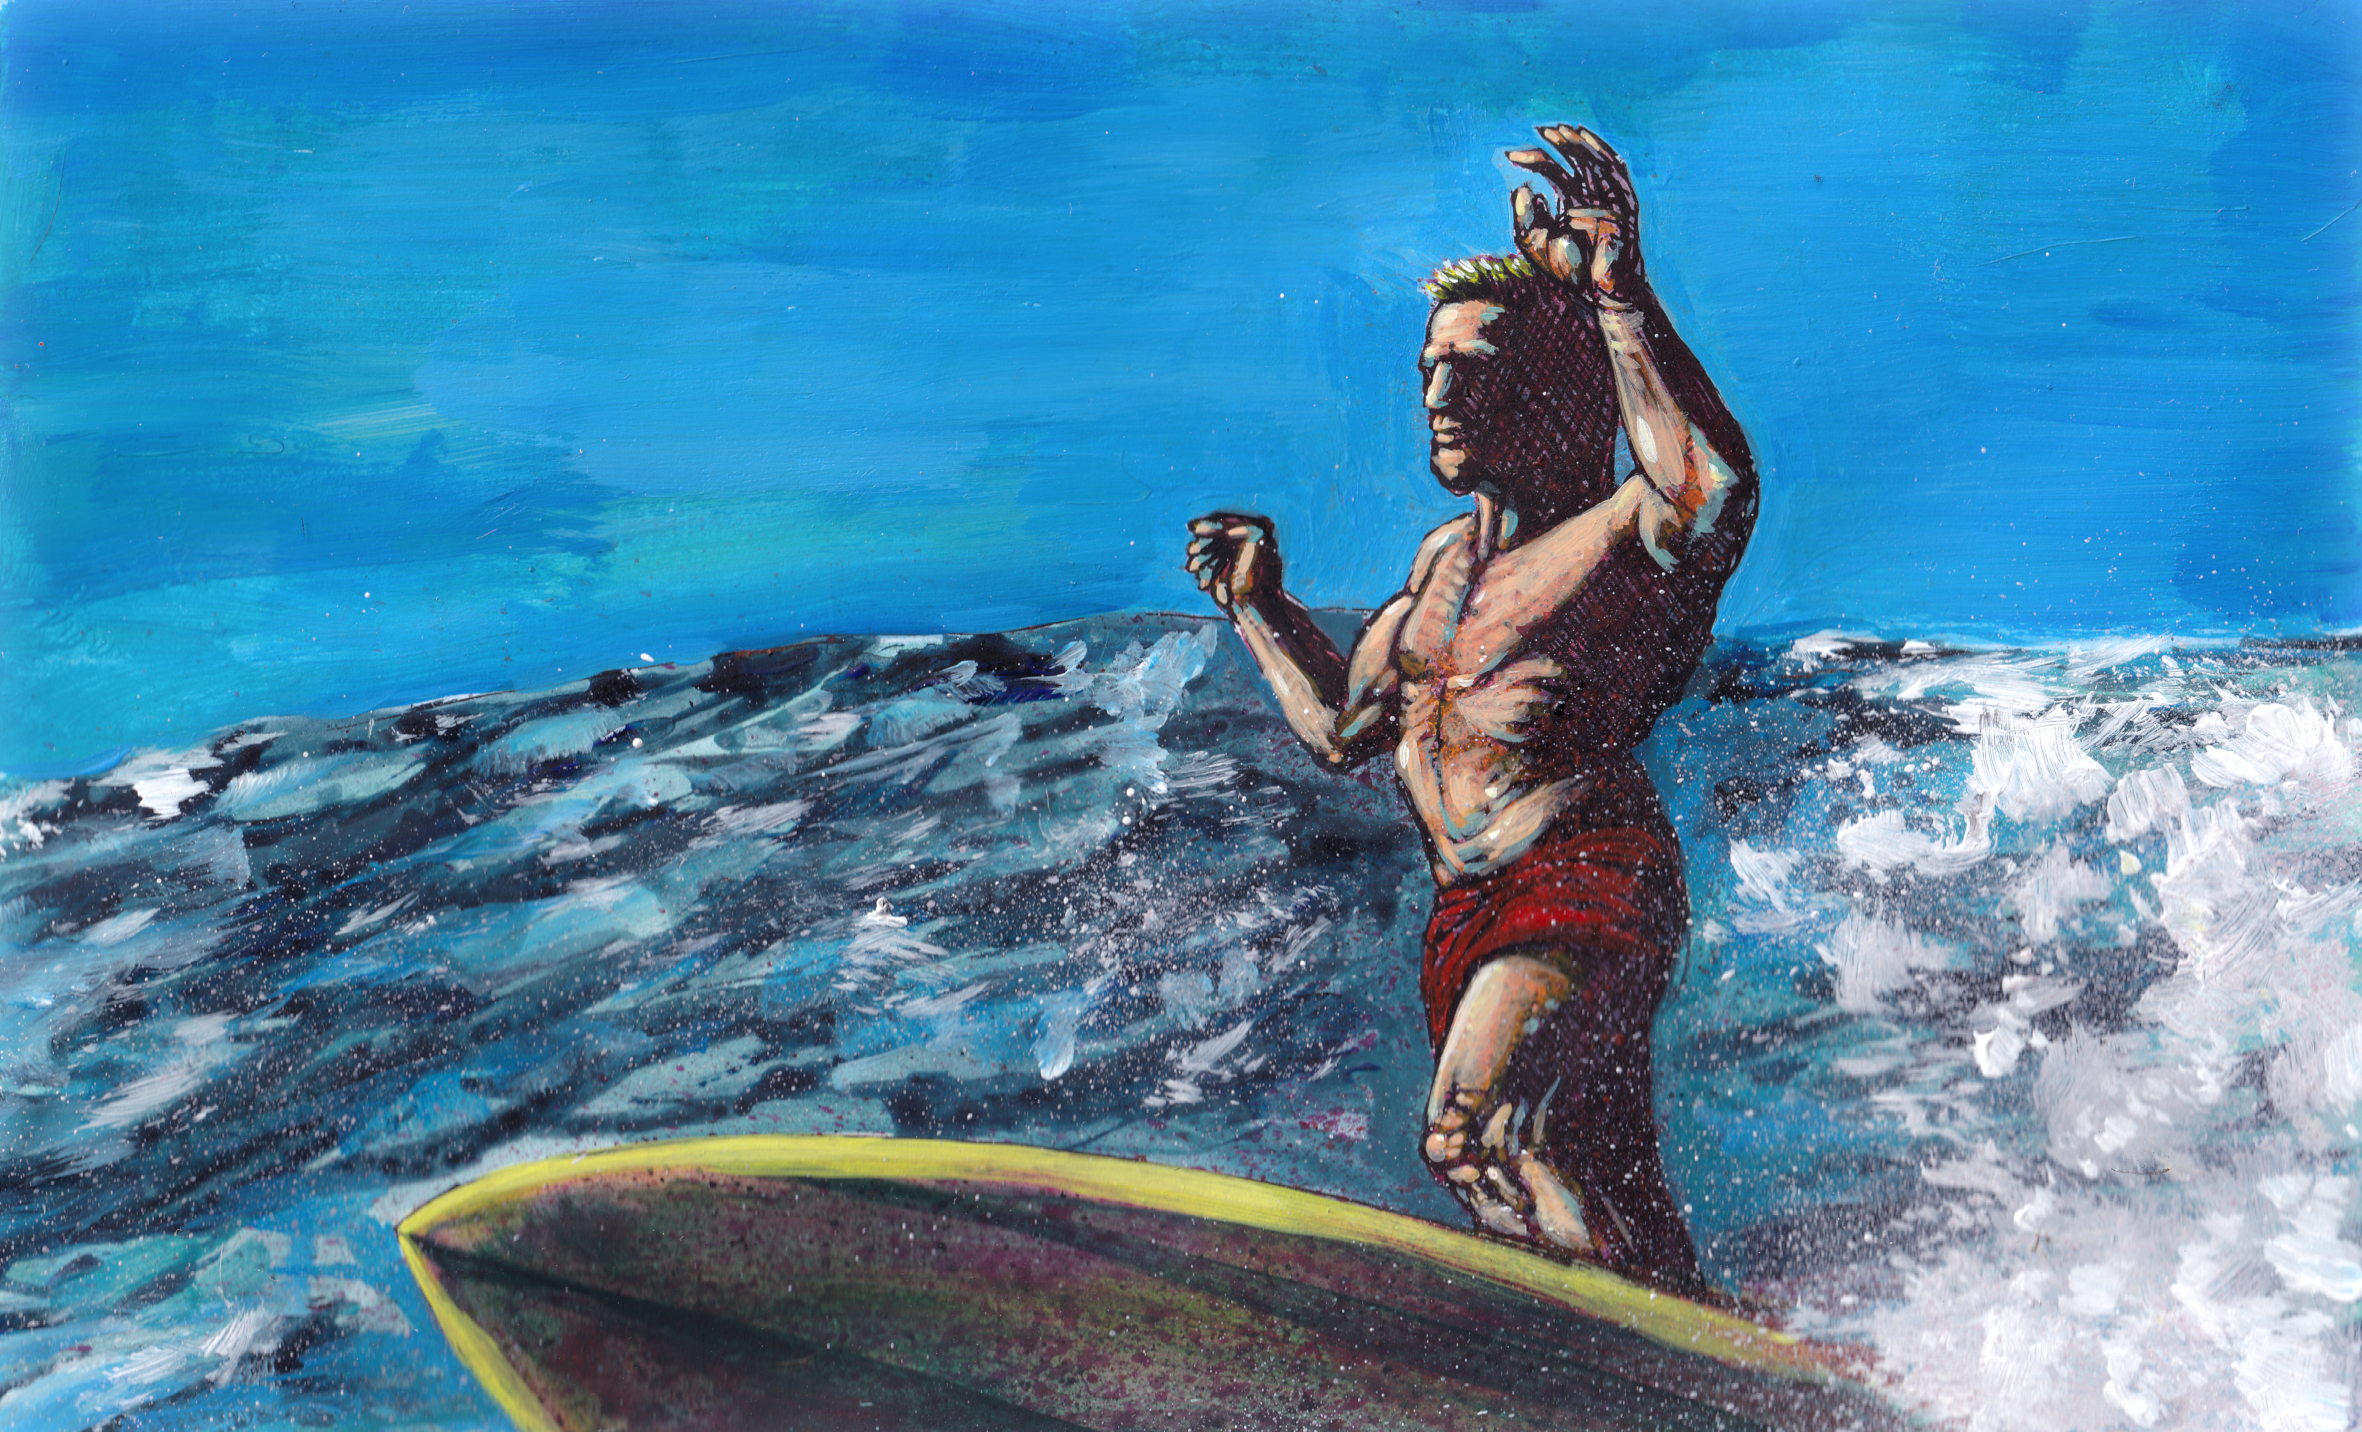 Phil Edwards surfing speedpainting